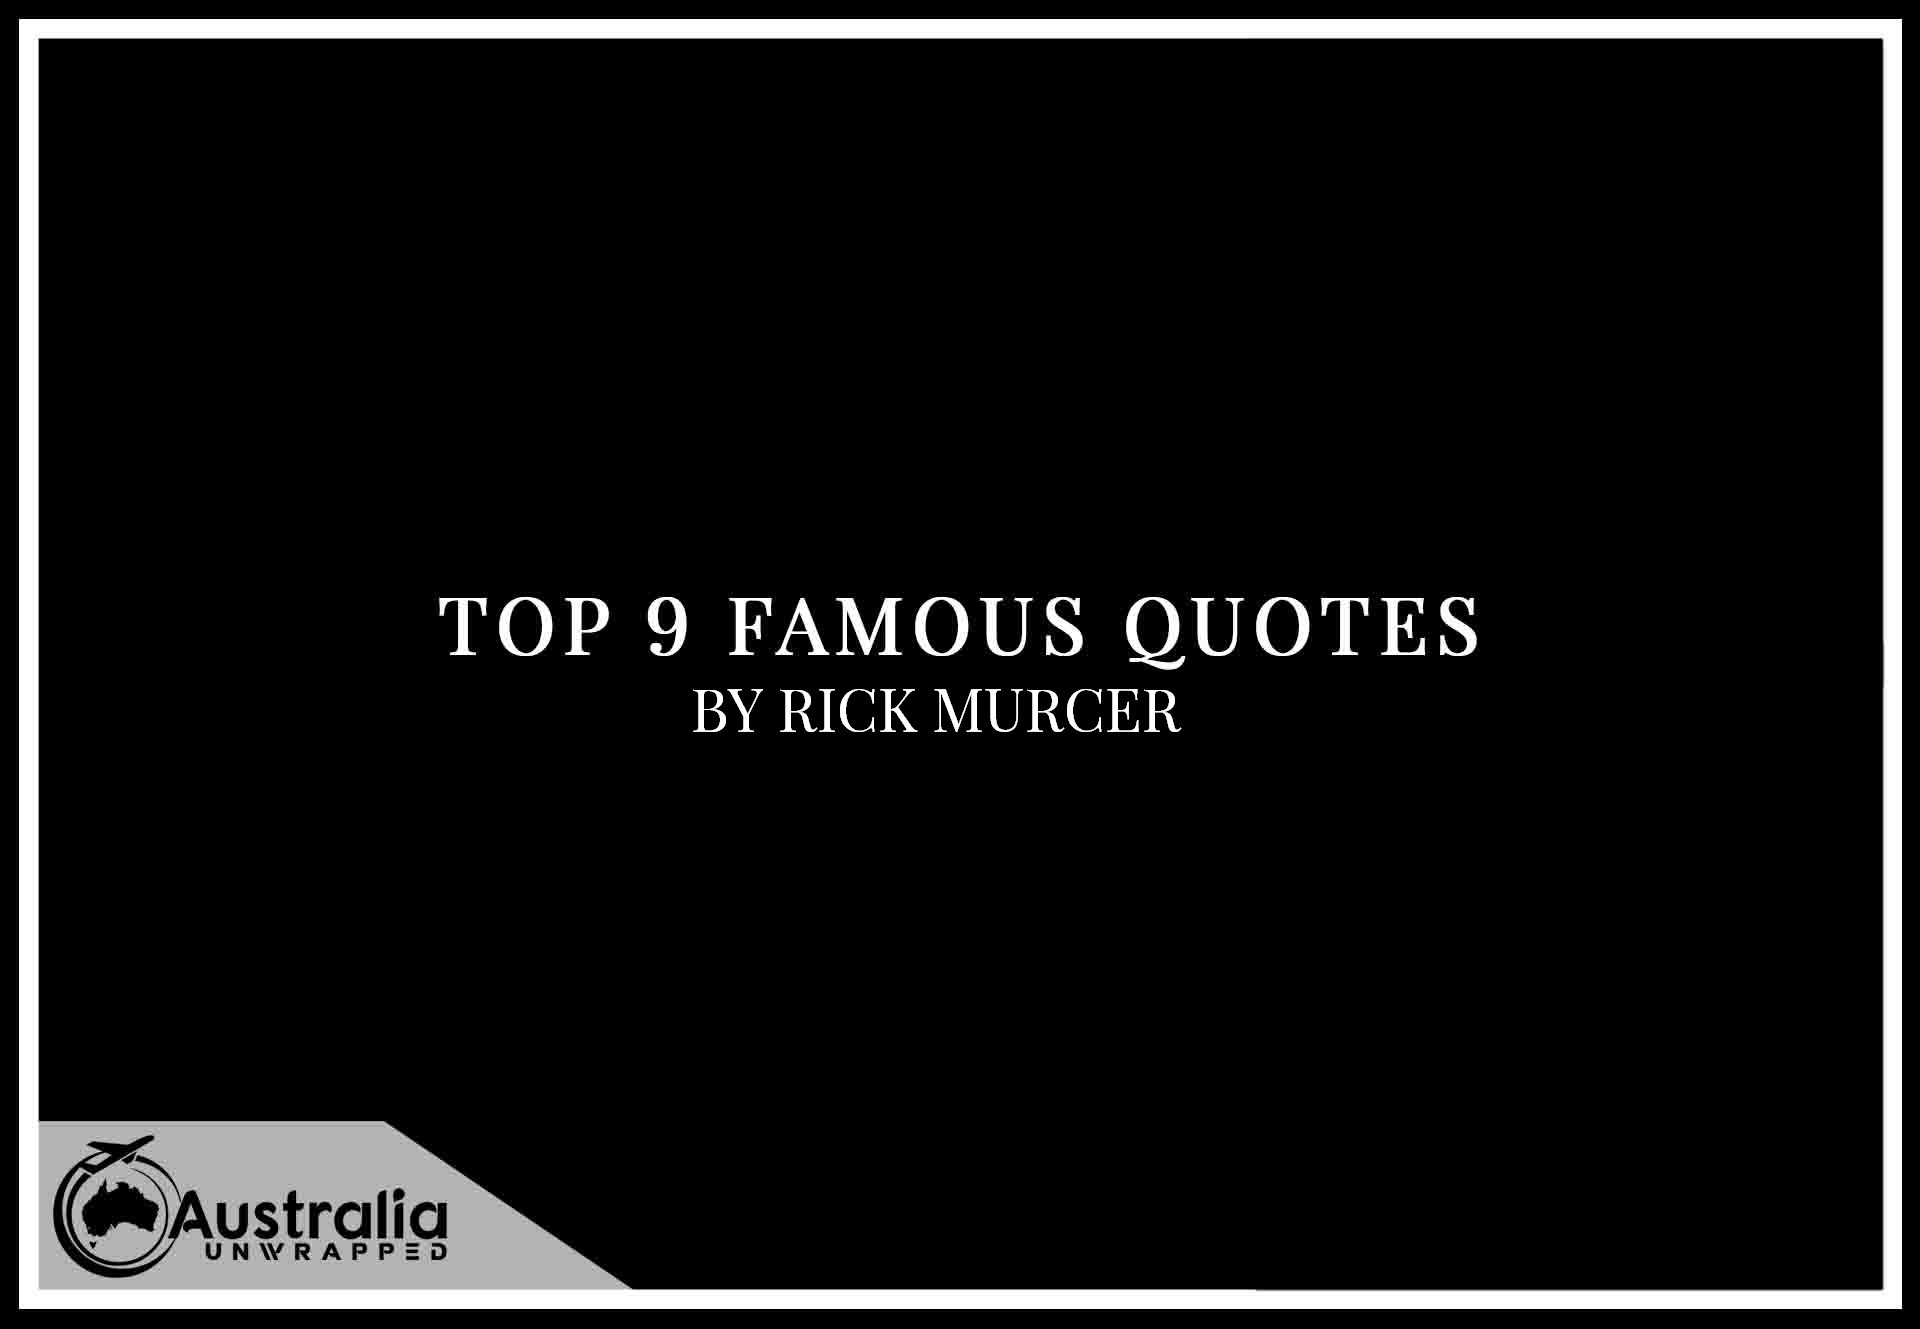 Top 9 Famous Quotes by Author Rick Murcer